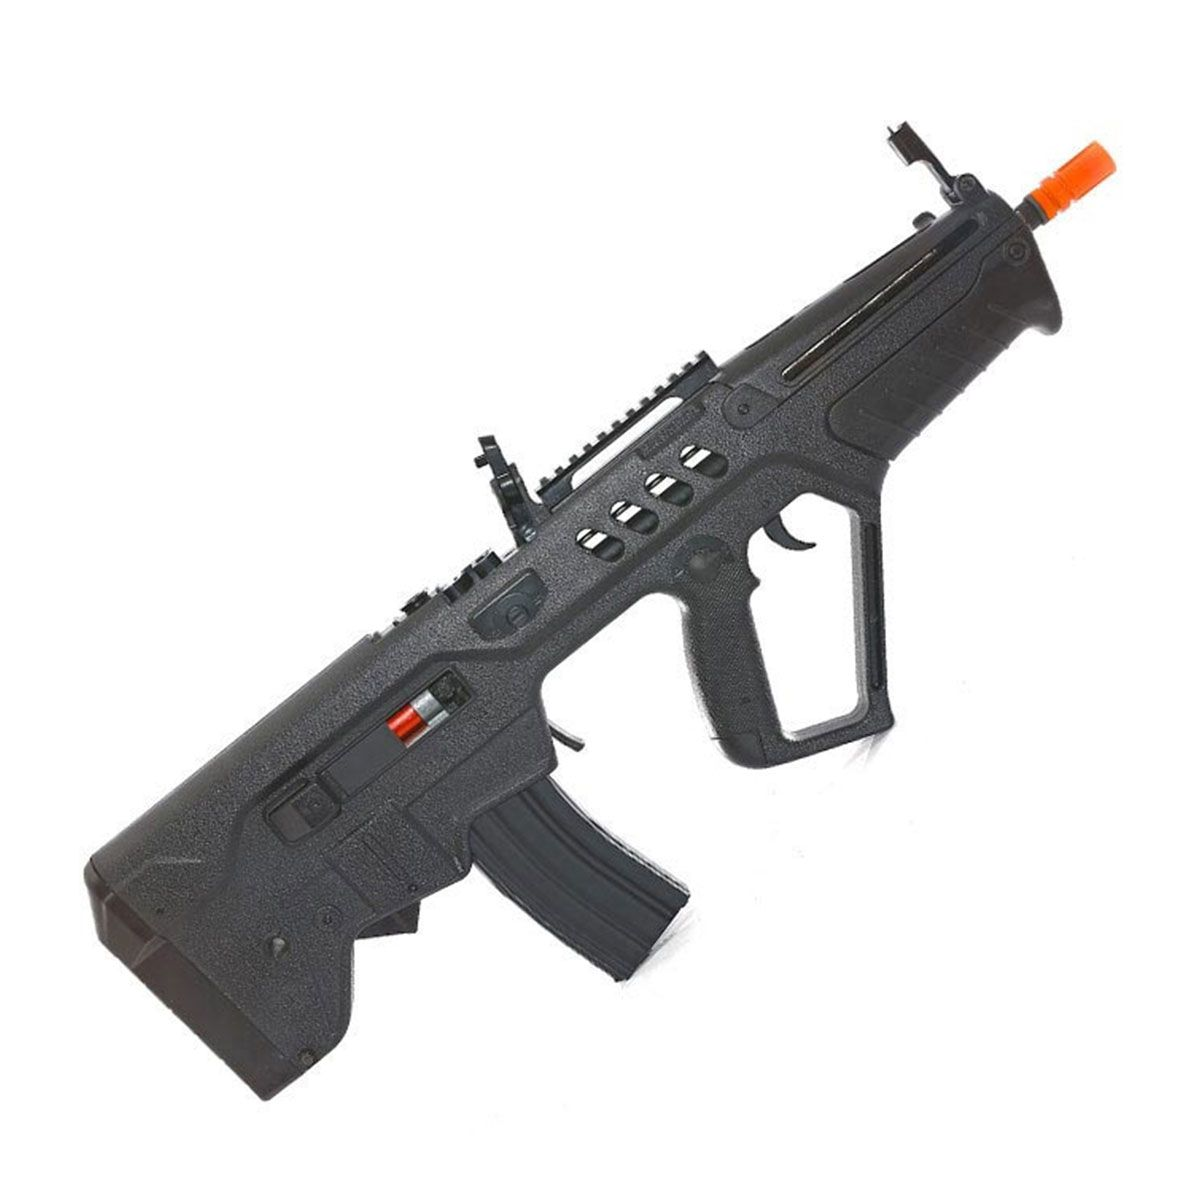 Rifle de Airsoft S&T Travor T-21 Elétrico 6mm